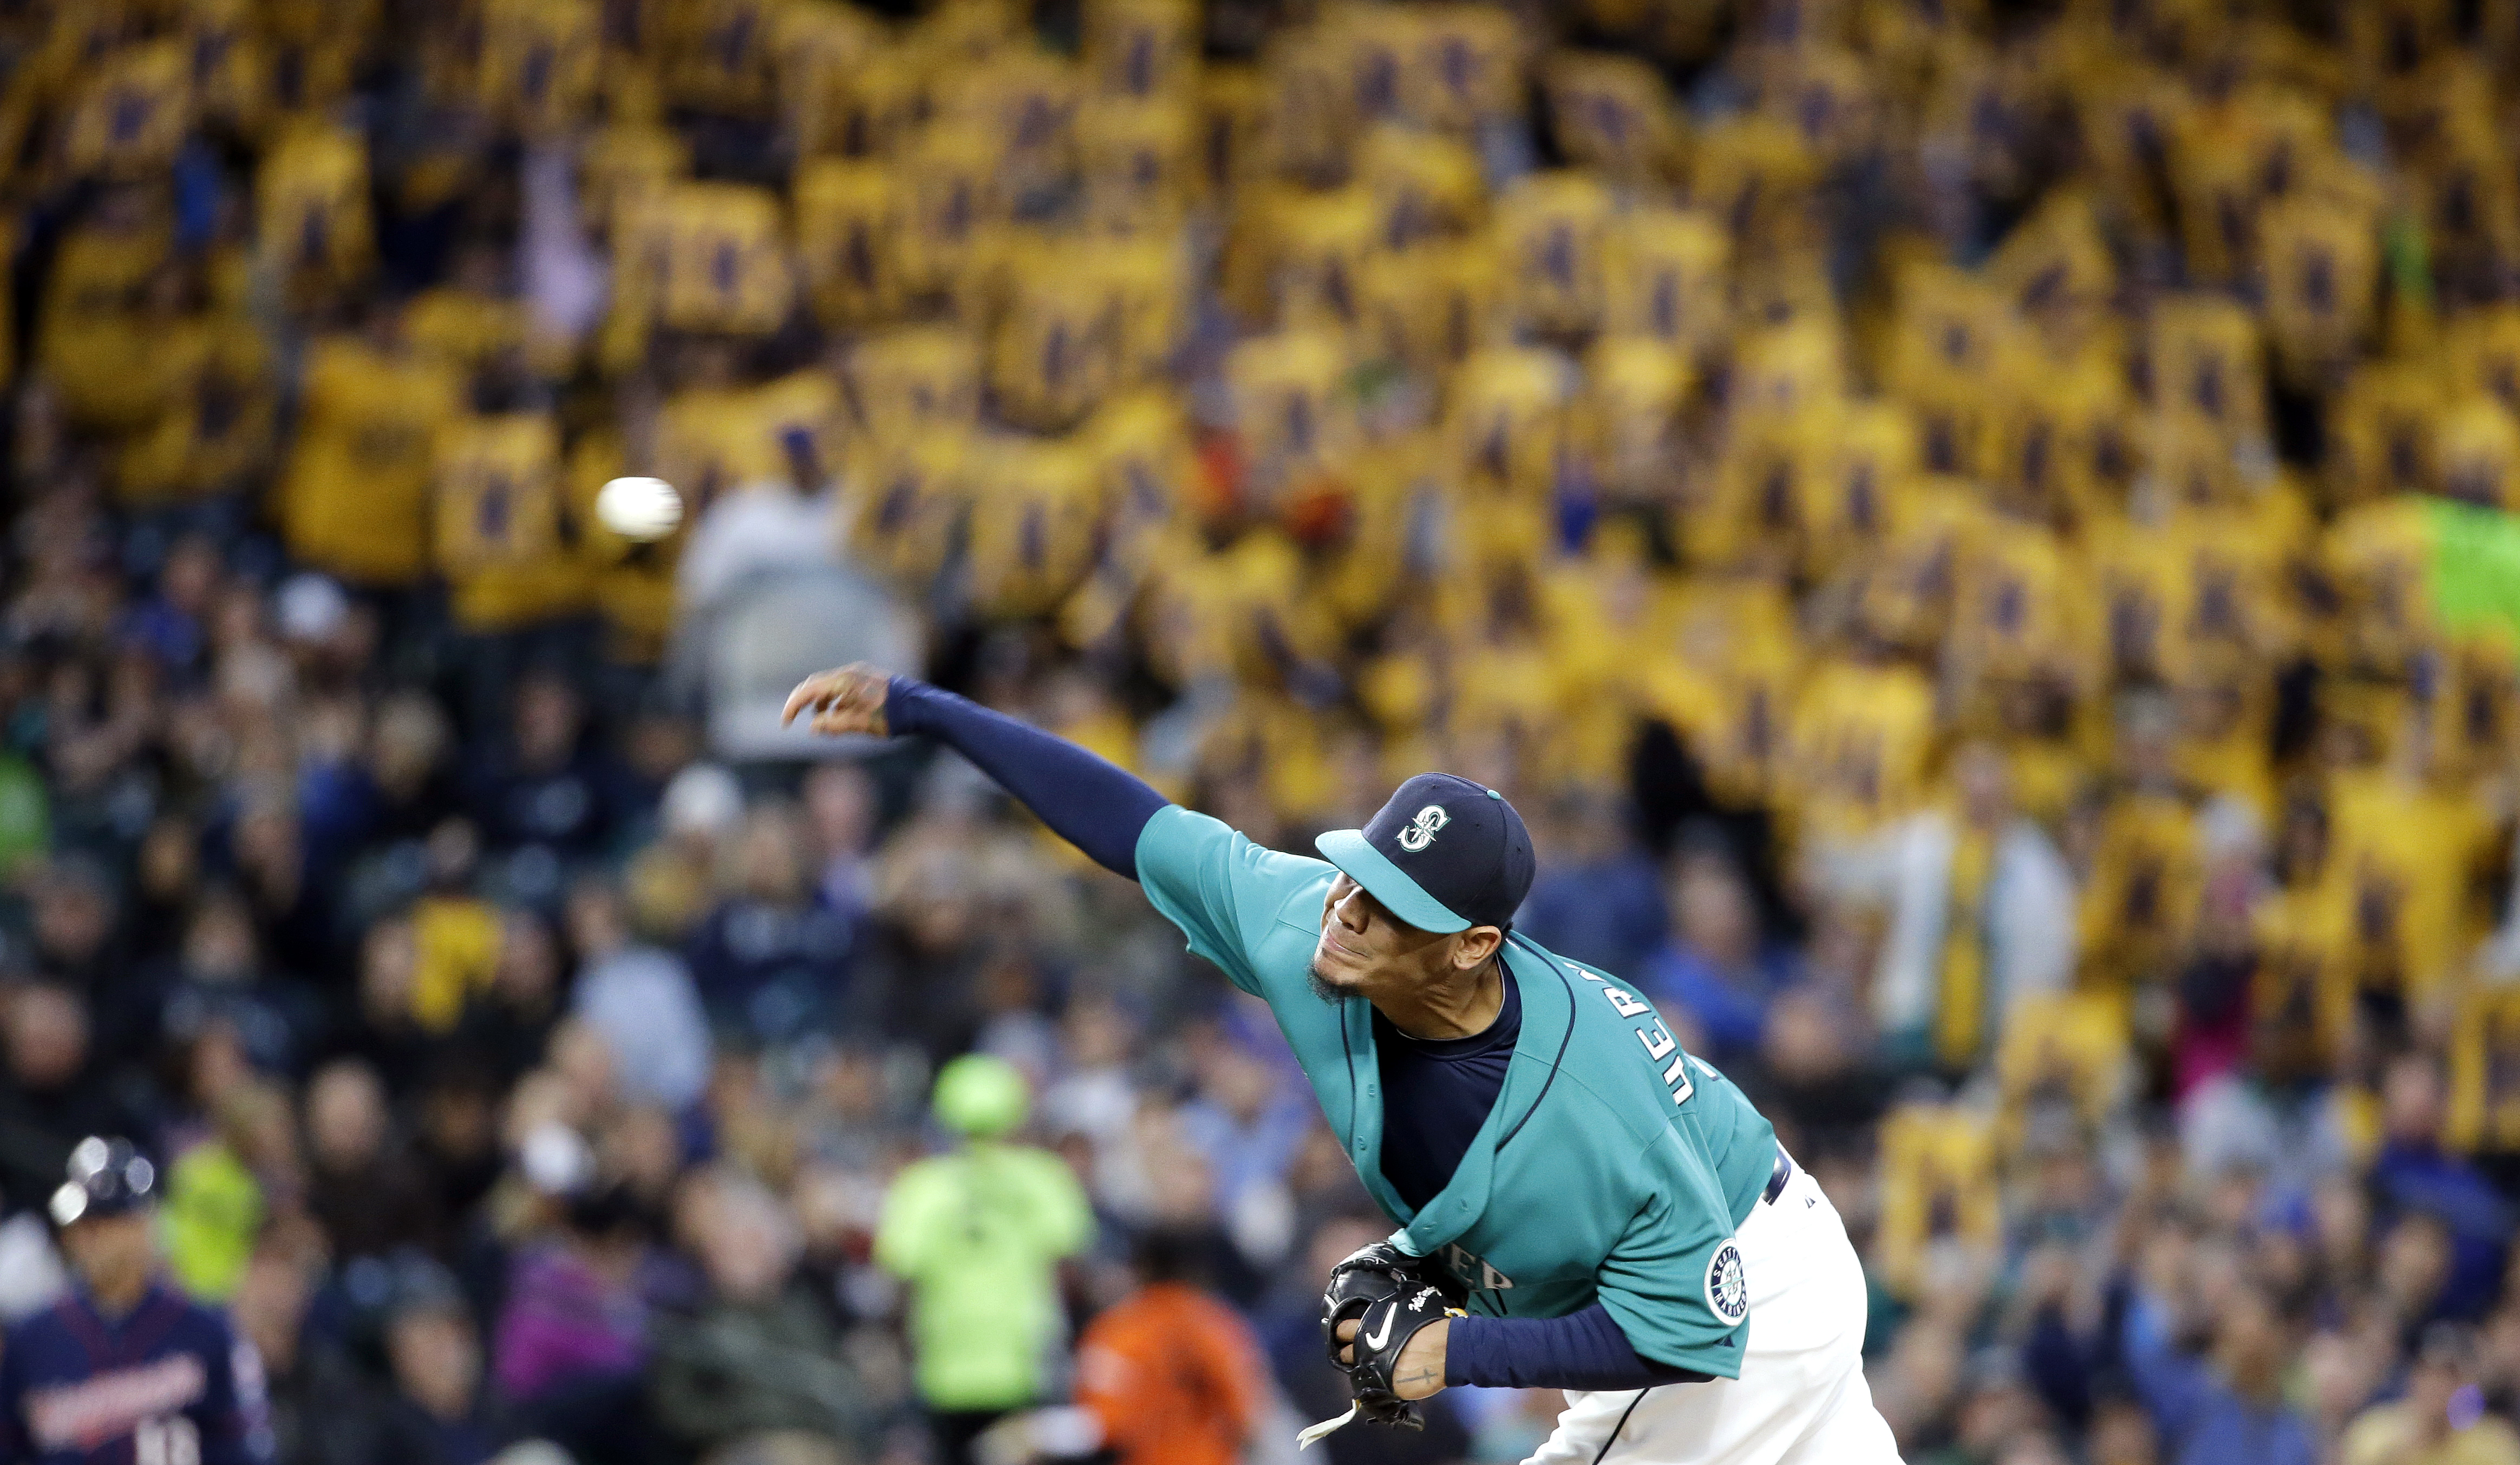 "Seattle Mariners starting pitcher Felix Hernandez throws, with a backdrop of yellow ""K"" strikeout cards held by fans, during the fifth inning of the Mariners' baseball game against the Minnesota Twins on Friday, April 24, 2015, in Seattle. (AP Photo/Elain"